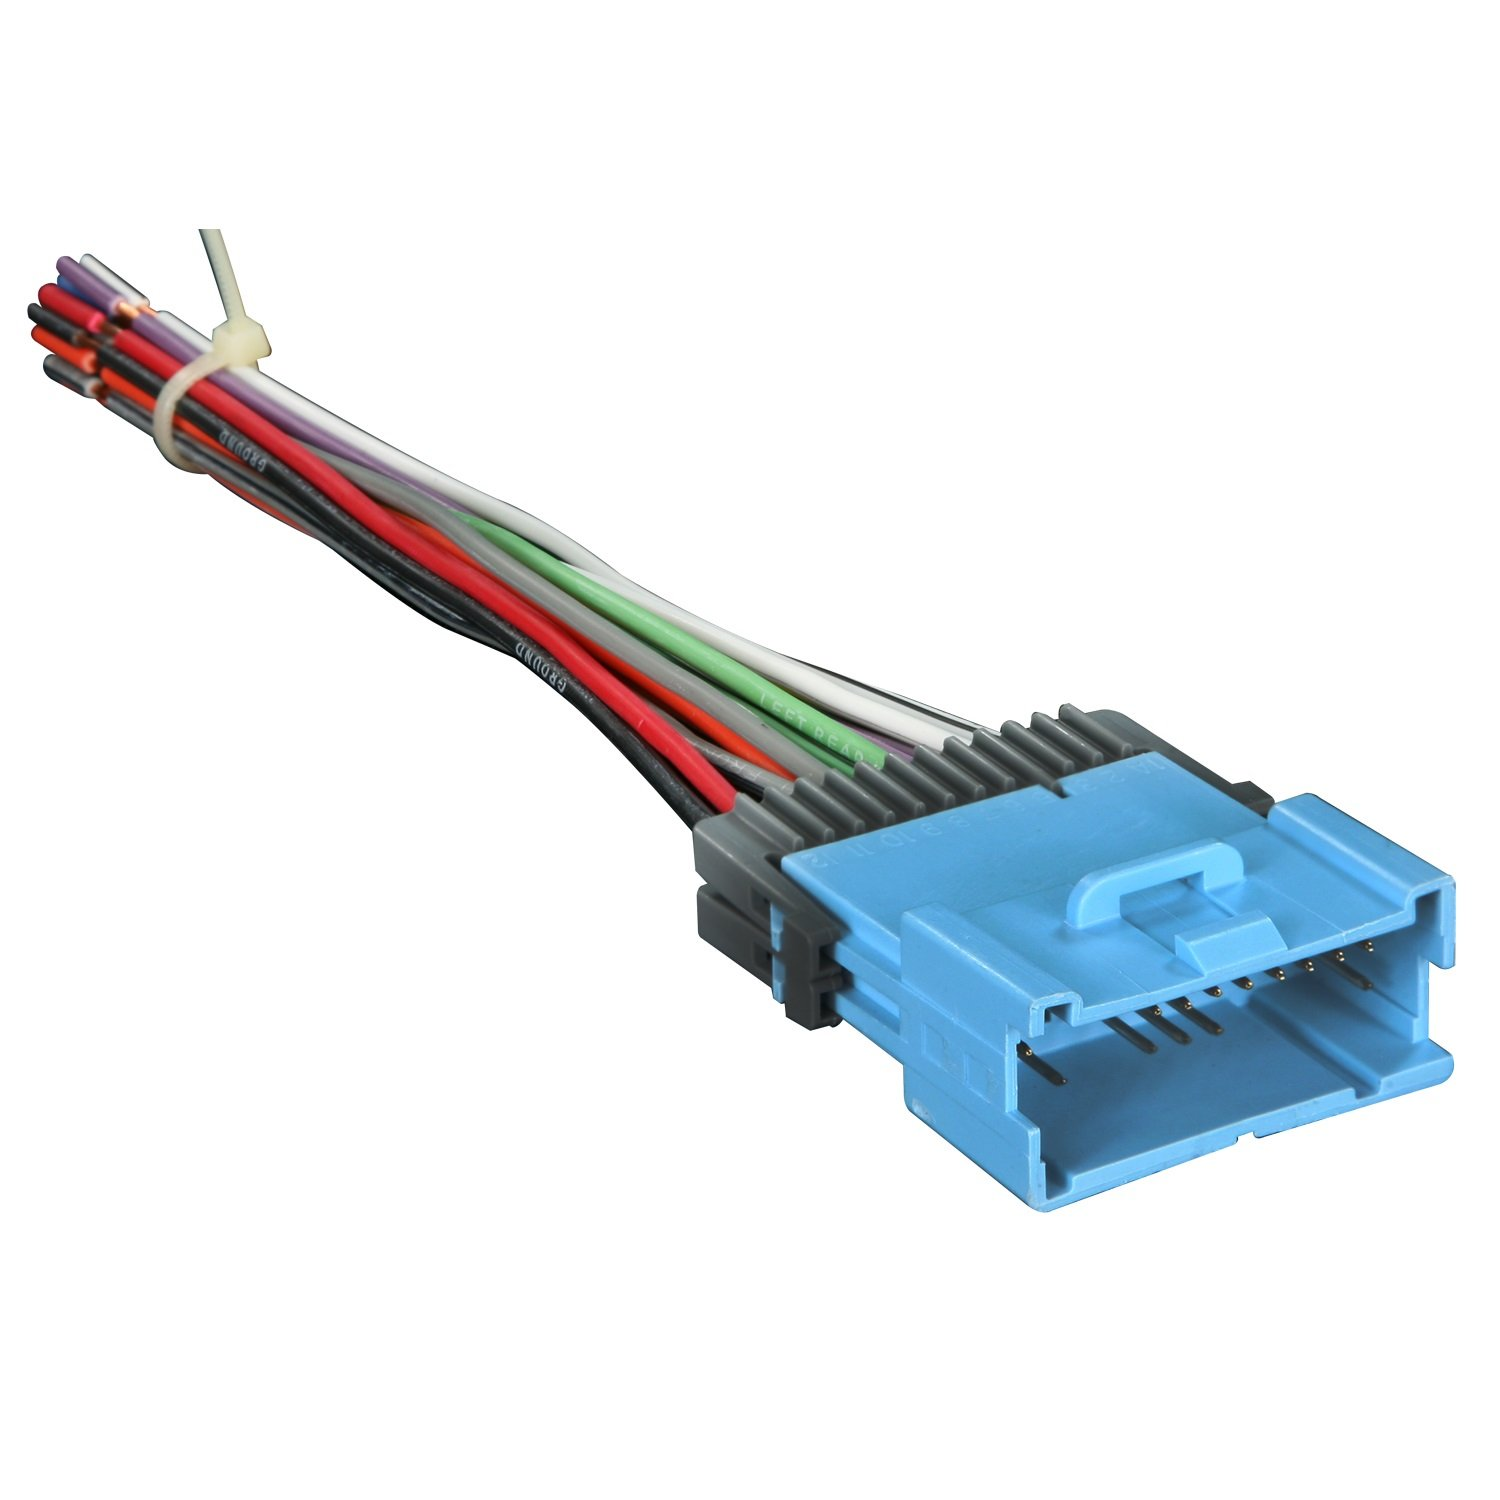 61ruWw 2aJL._SL1500_ amazon com metra 70 2102 radio wiring harness for gm 04 05 car  at aneh.co